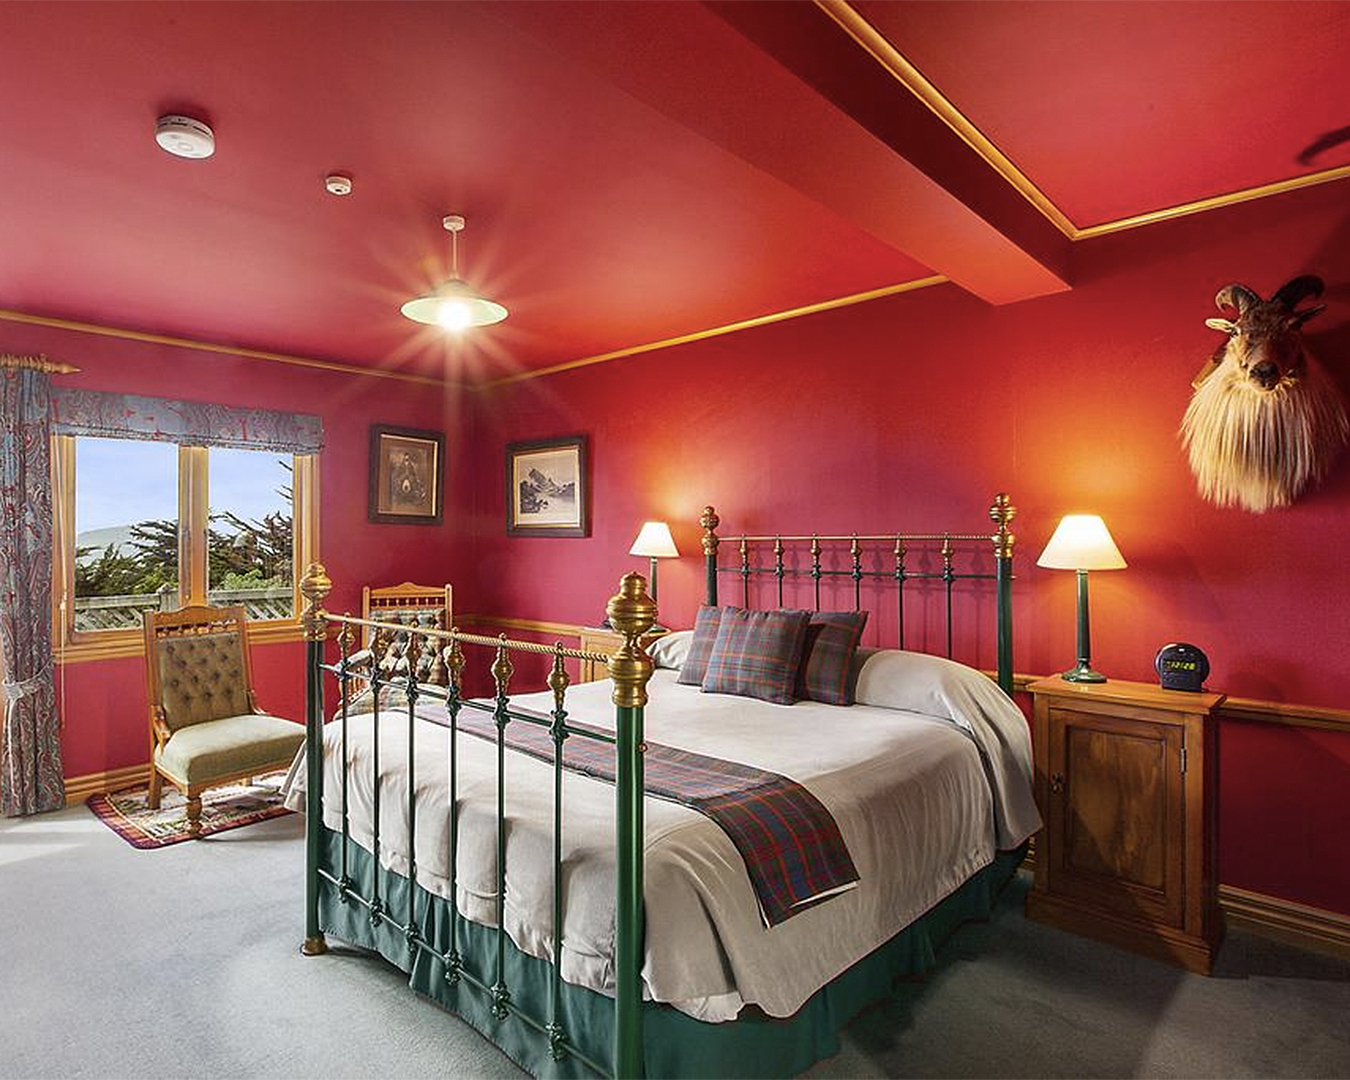 A stately red room at Lanarch Lodge in Dunedin.